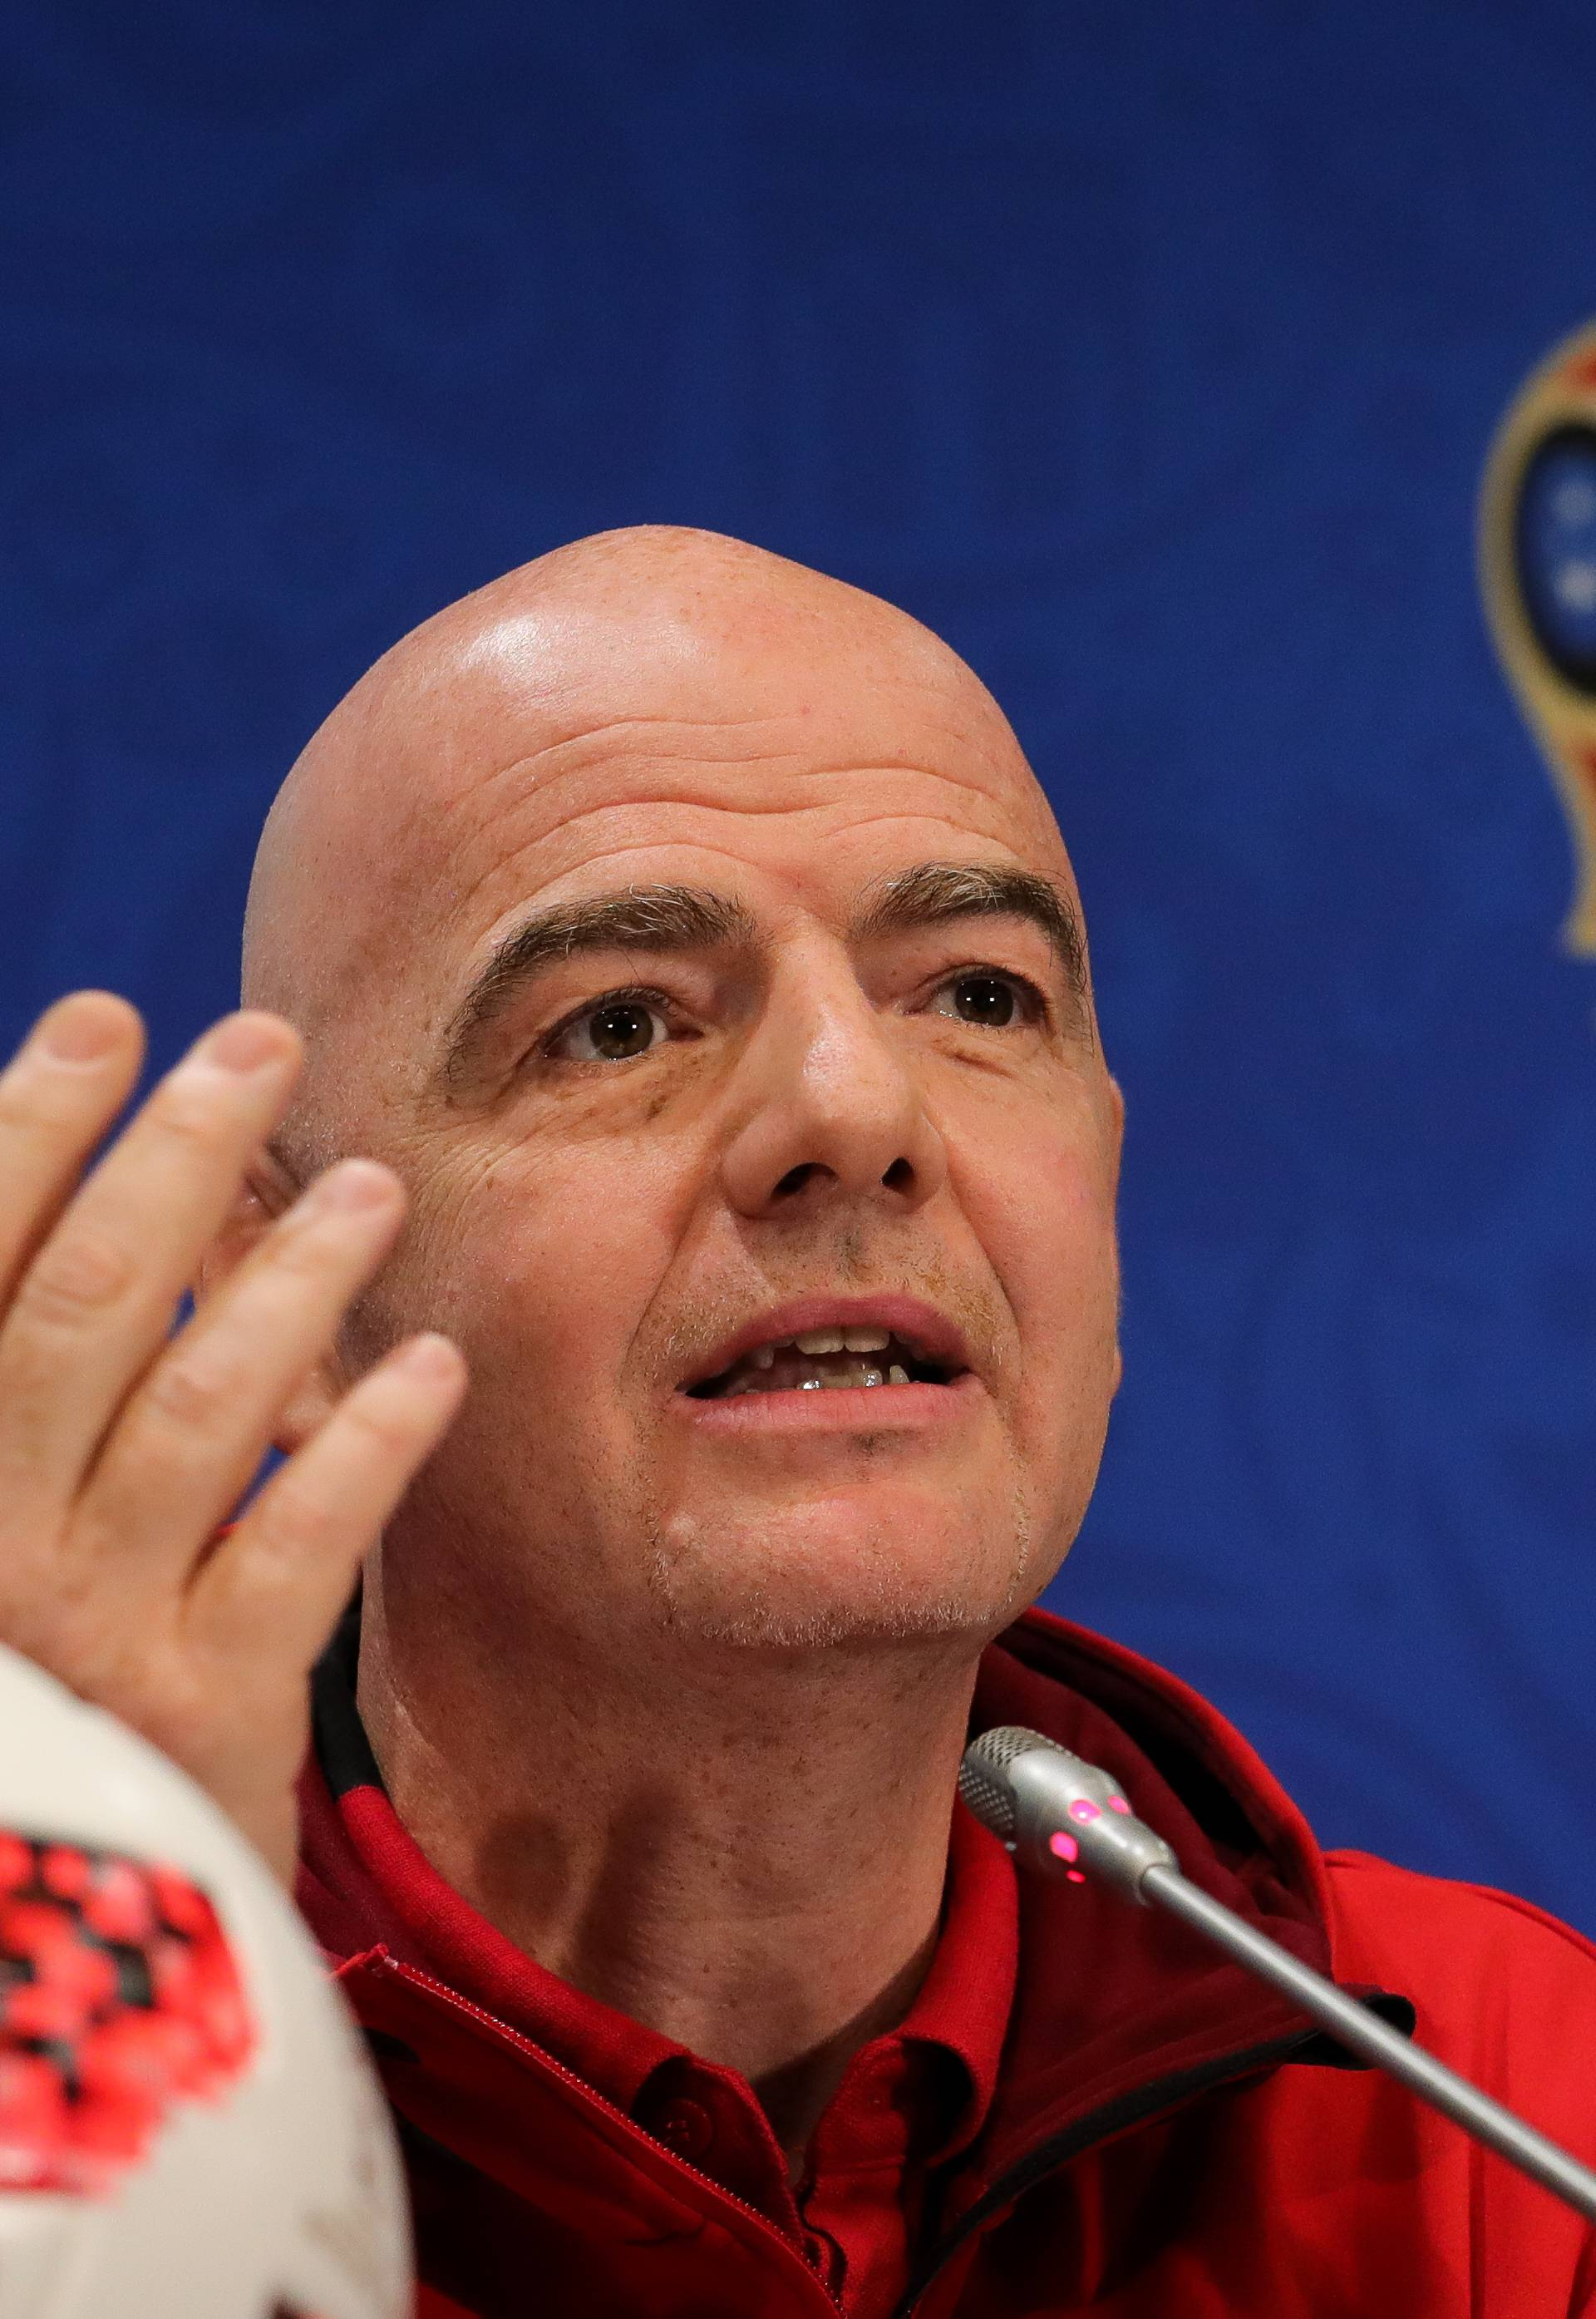 World Cup 2018 - Press conference with FIFA President Infantino